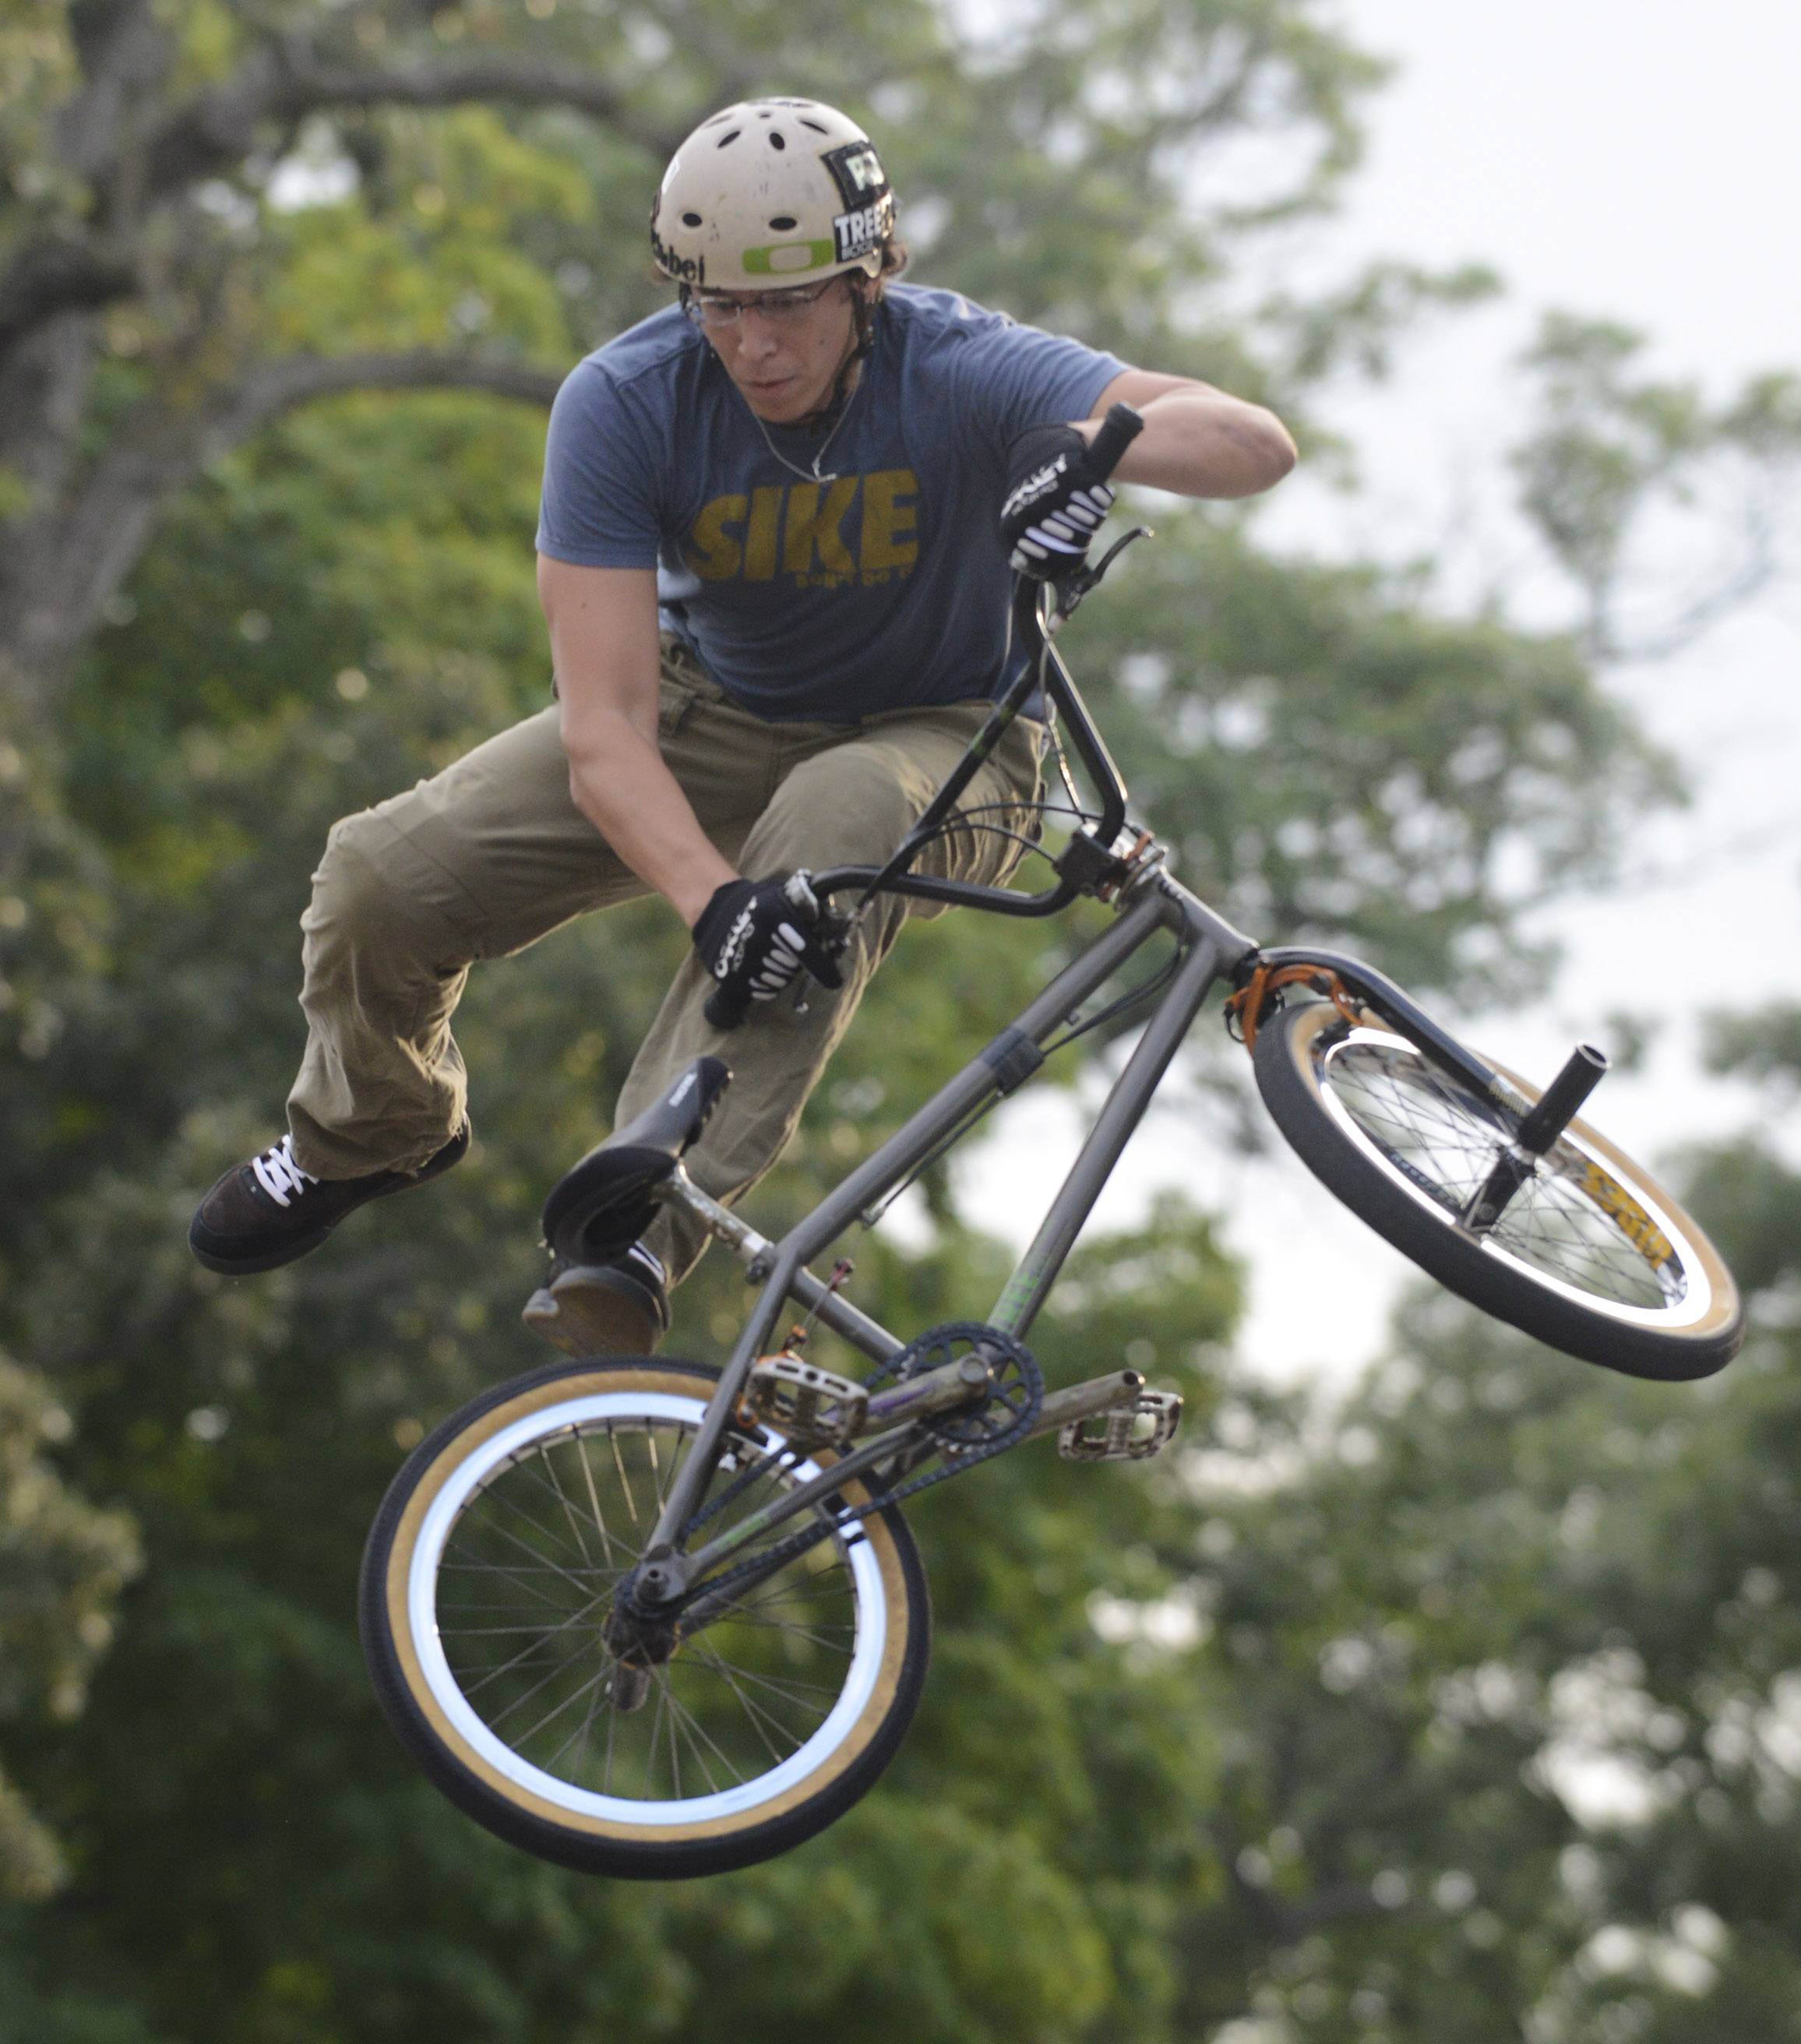 The Division BMX Stunt Team returns for the 21st annual National Night Out picnic, from 5 to 9 p.m. Tuesday.